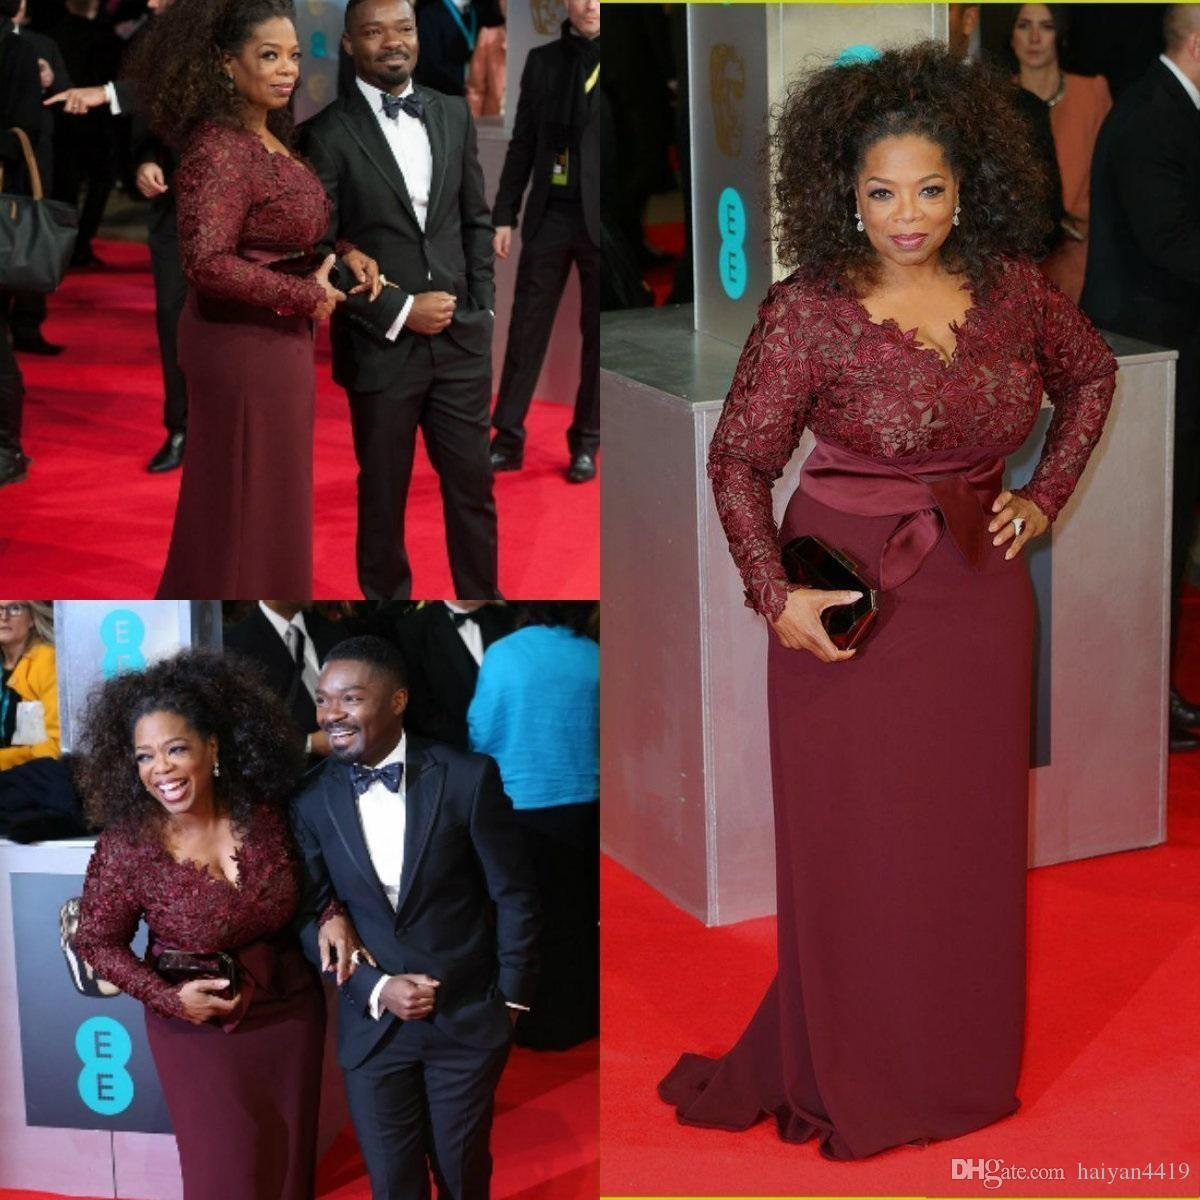 Oprah Winfrey Mother off bride dresses 2016 Long Sleeves V Neck Burgundy Lace Plus Size Mother Of the Bride Gowns Red Carpet Dress